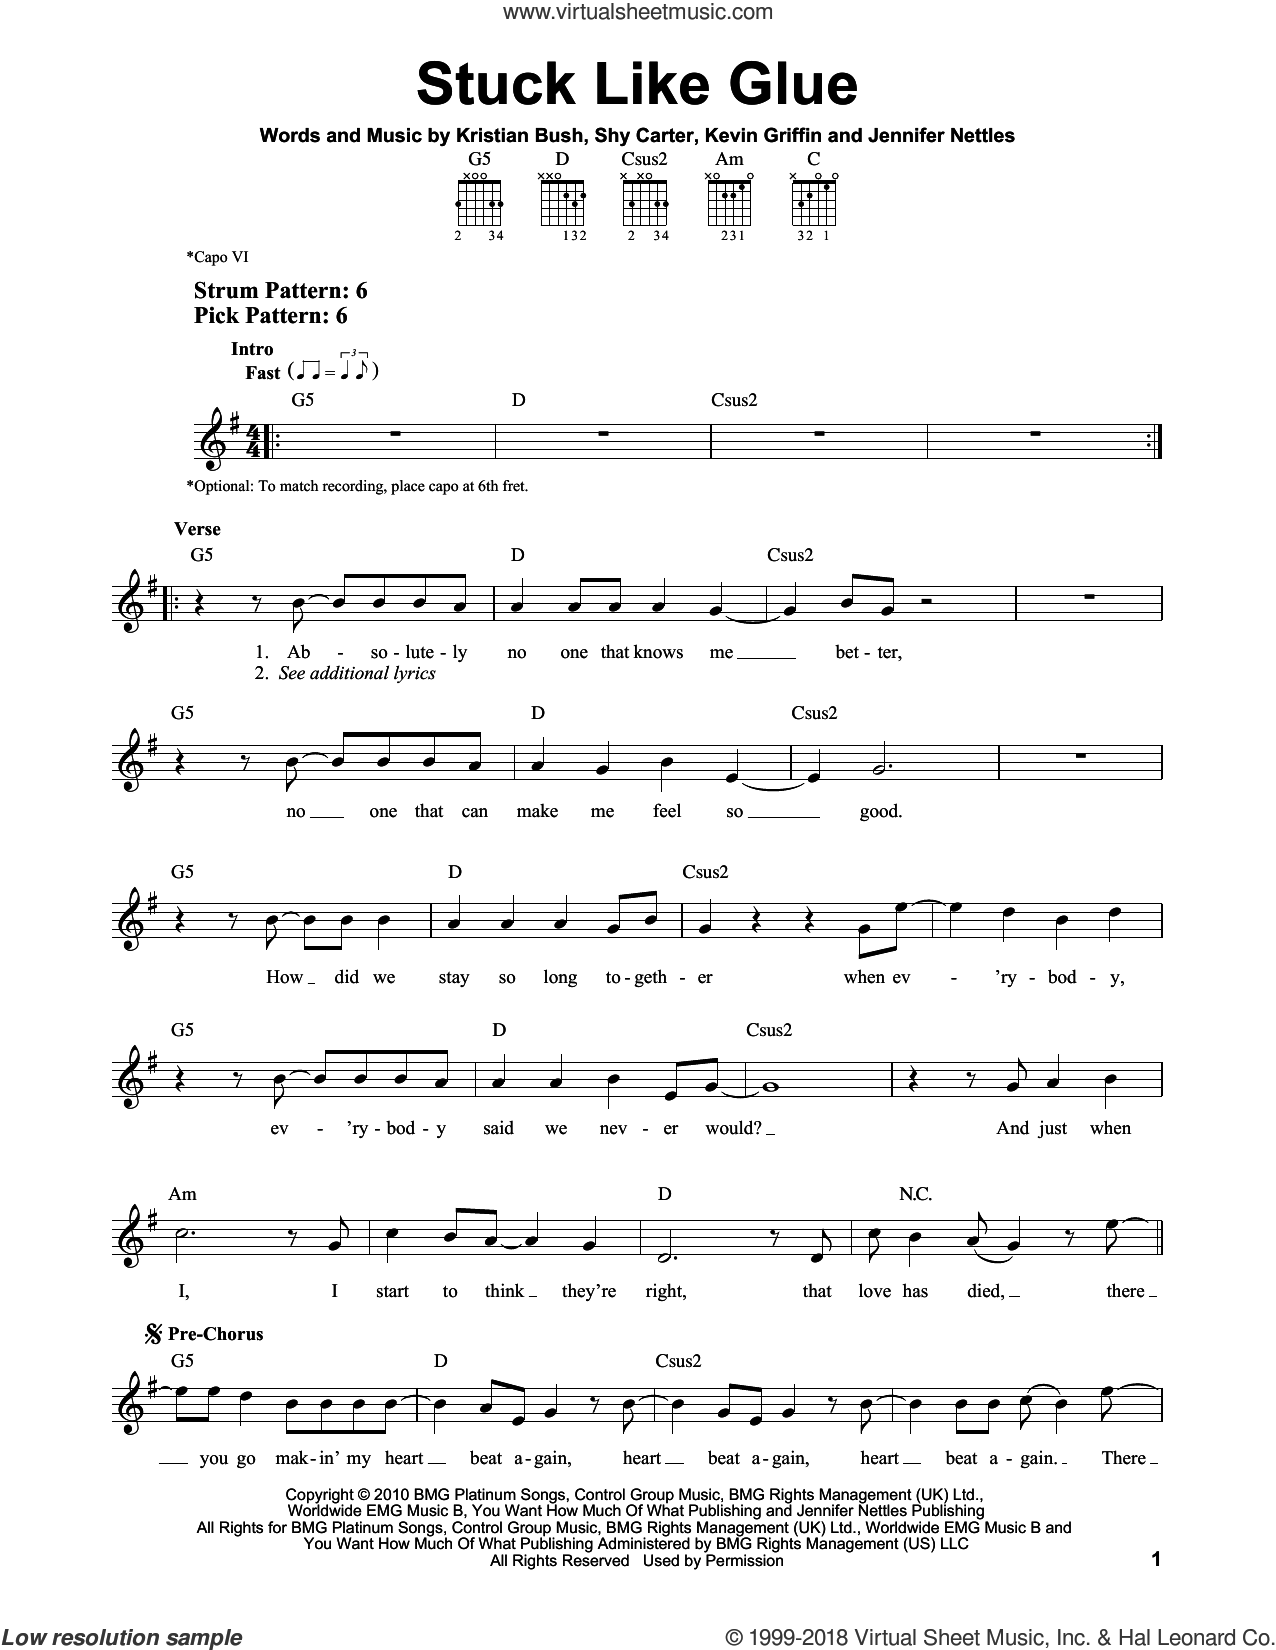 Stuck Like Glue sheet music for guitar solo (chords) by Sugarland, Jennifer Nettles, Kevin Griffin, Kristian Bush and Shy Carter, easy guitar (chords)